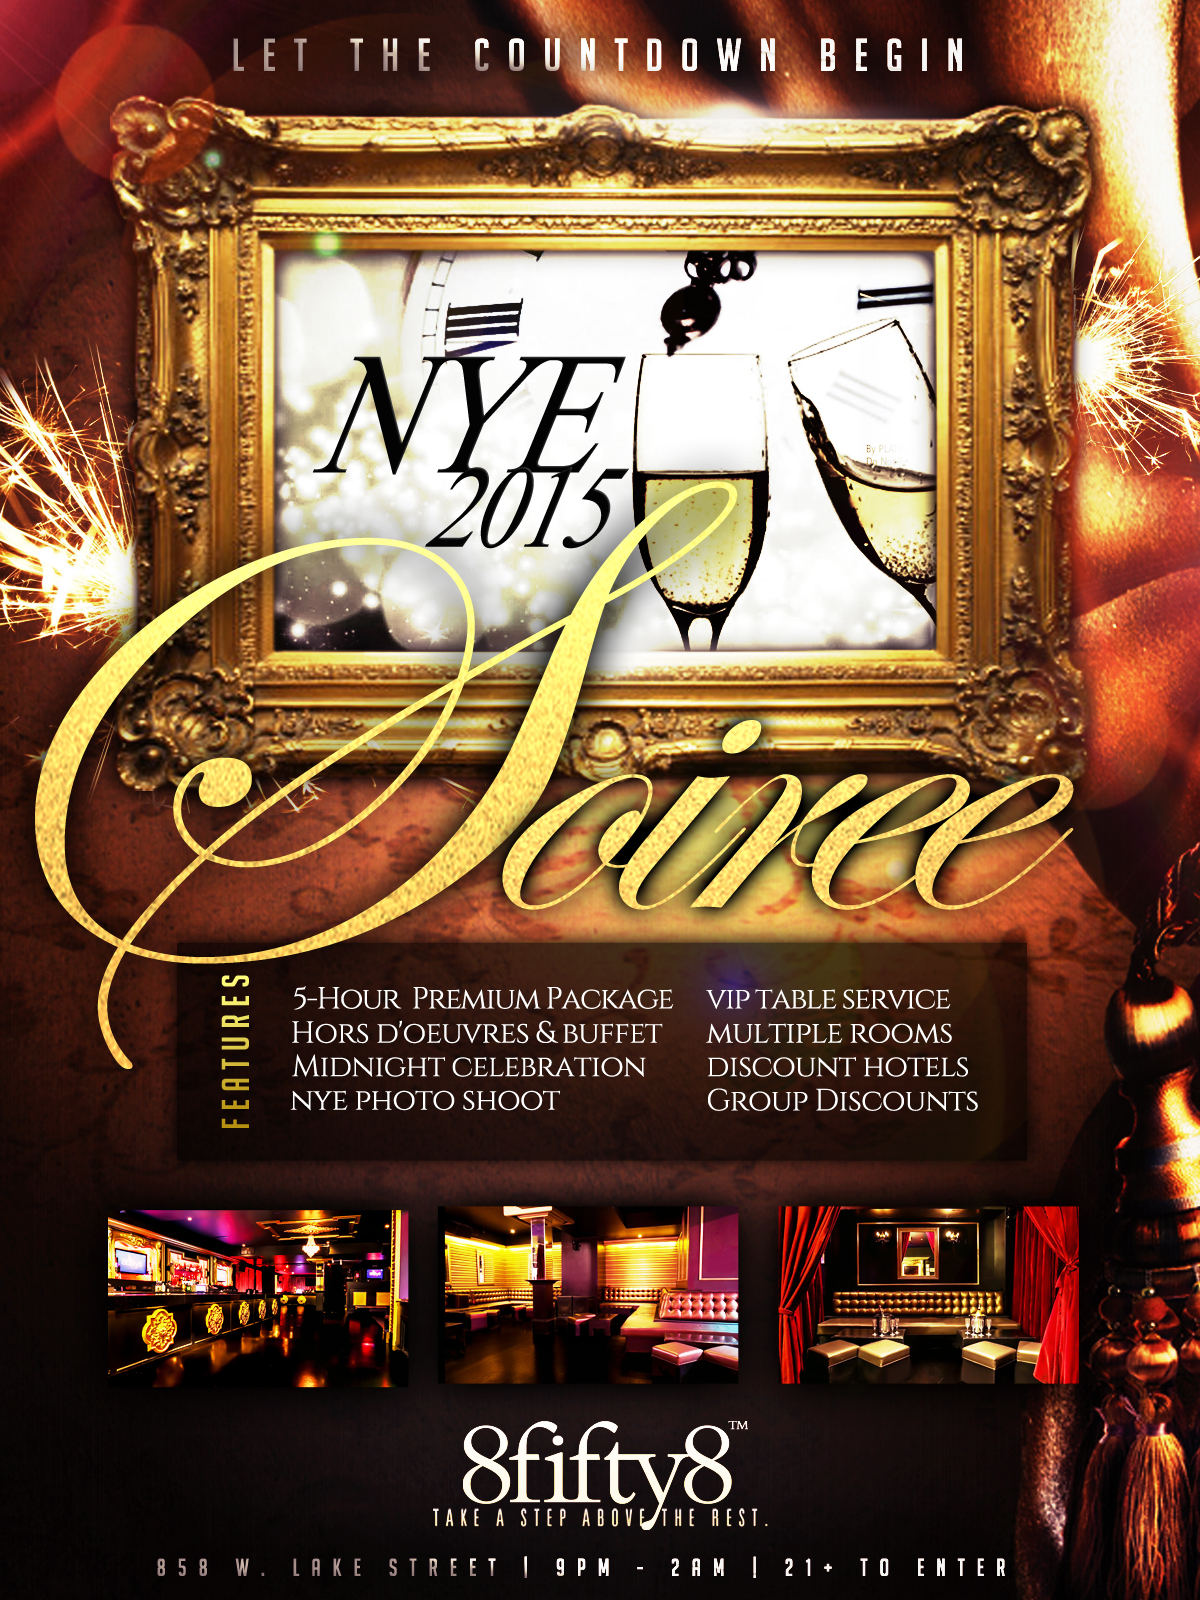 New Years Eve 2015 at 8fifty8 Chicago